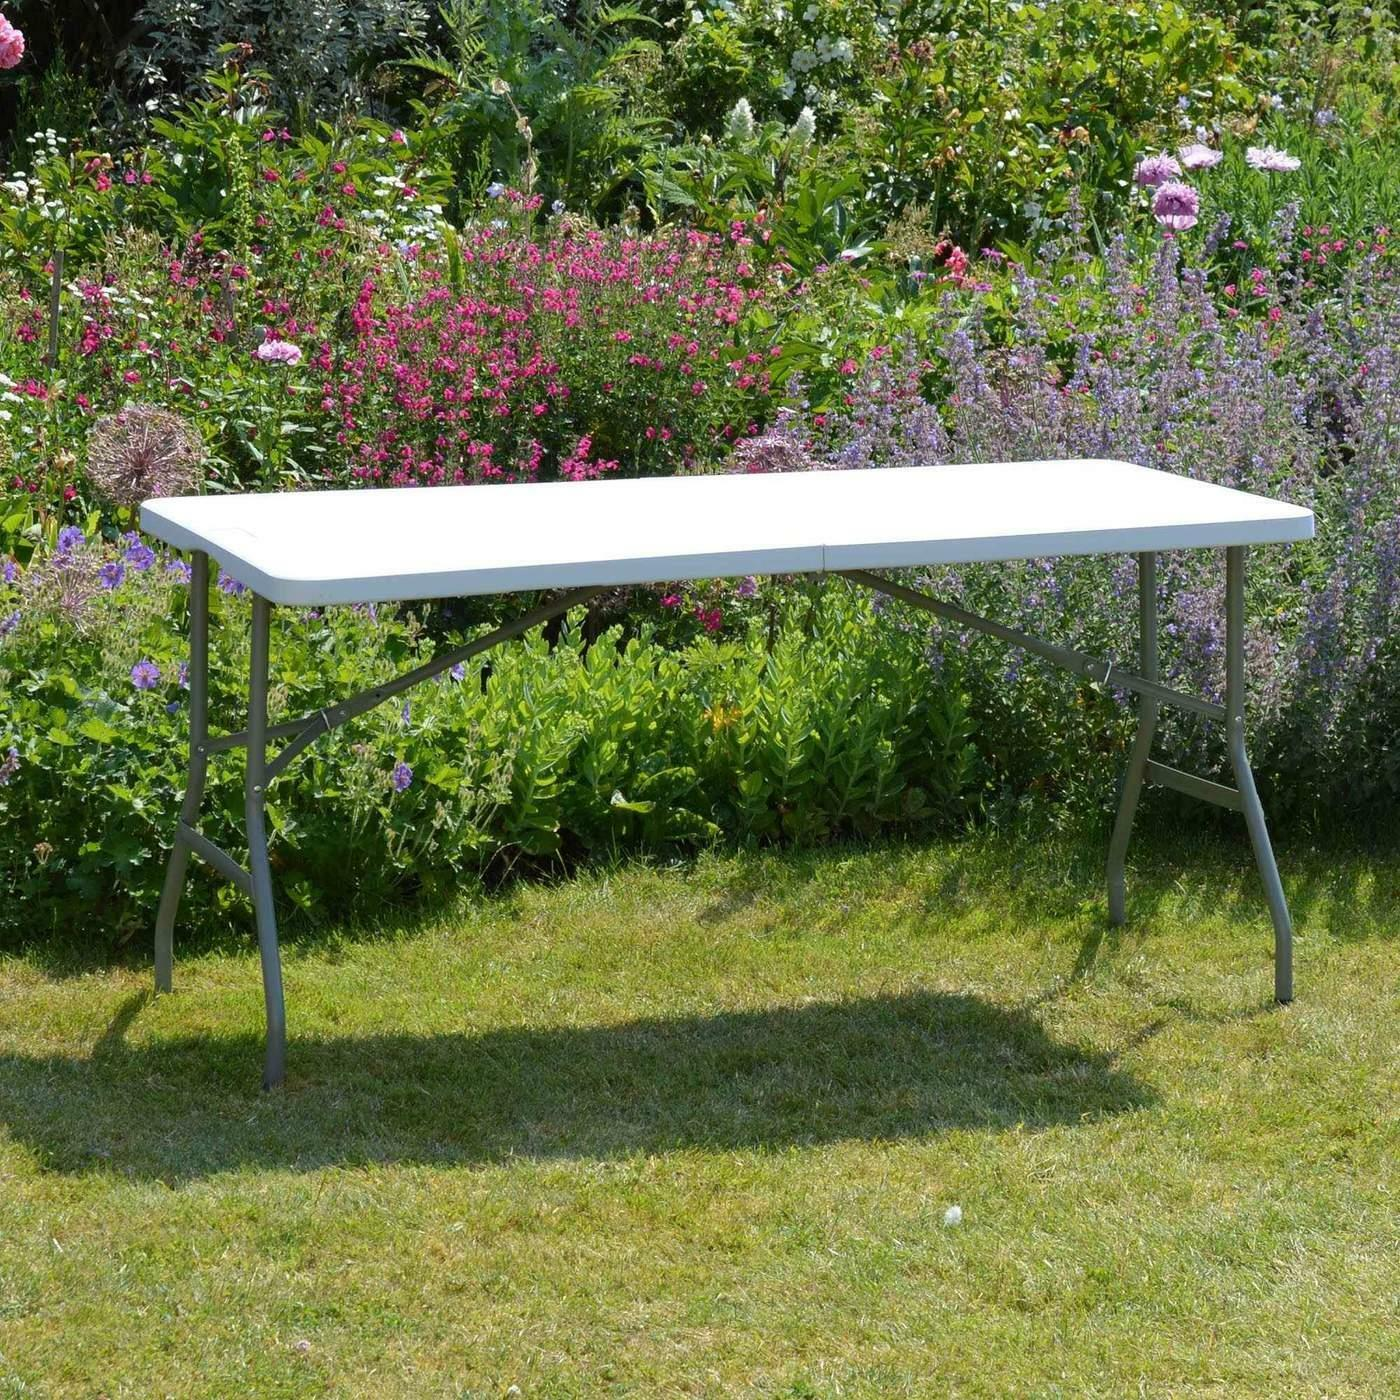 5 Foot Portable Folding Rectangle Trestle Table - White With Carry Handle